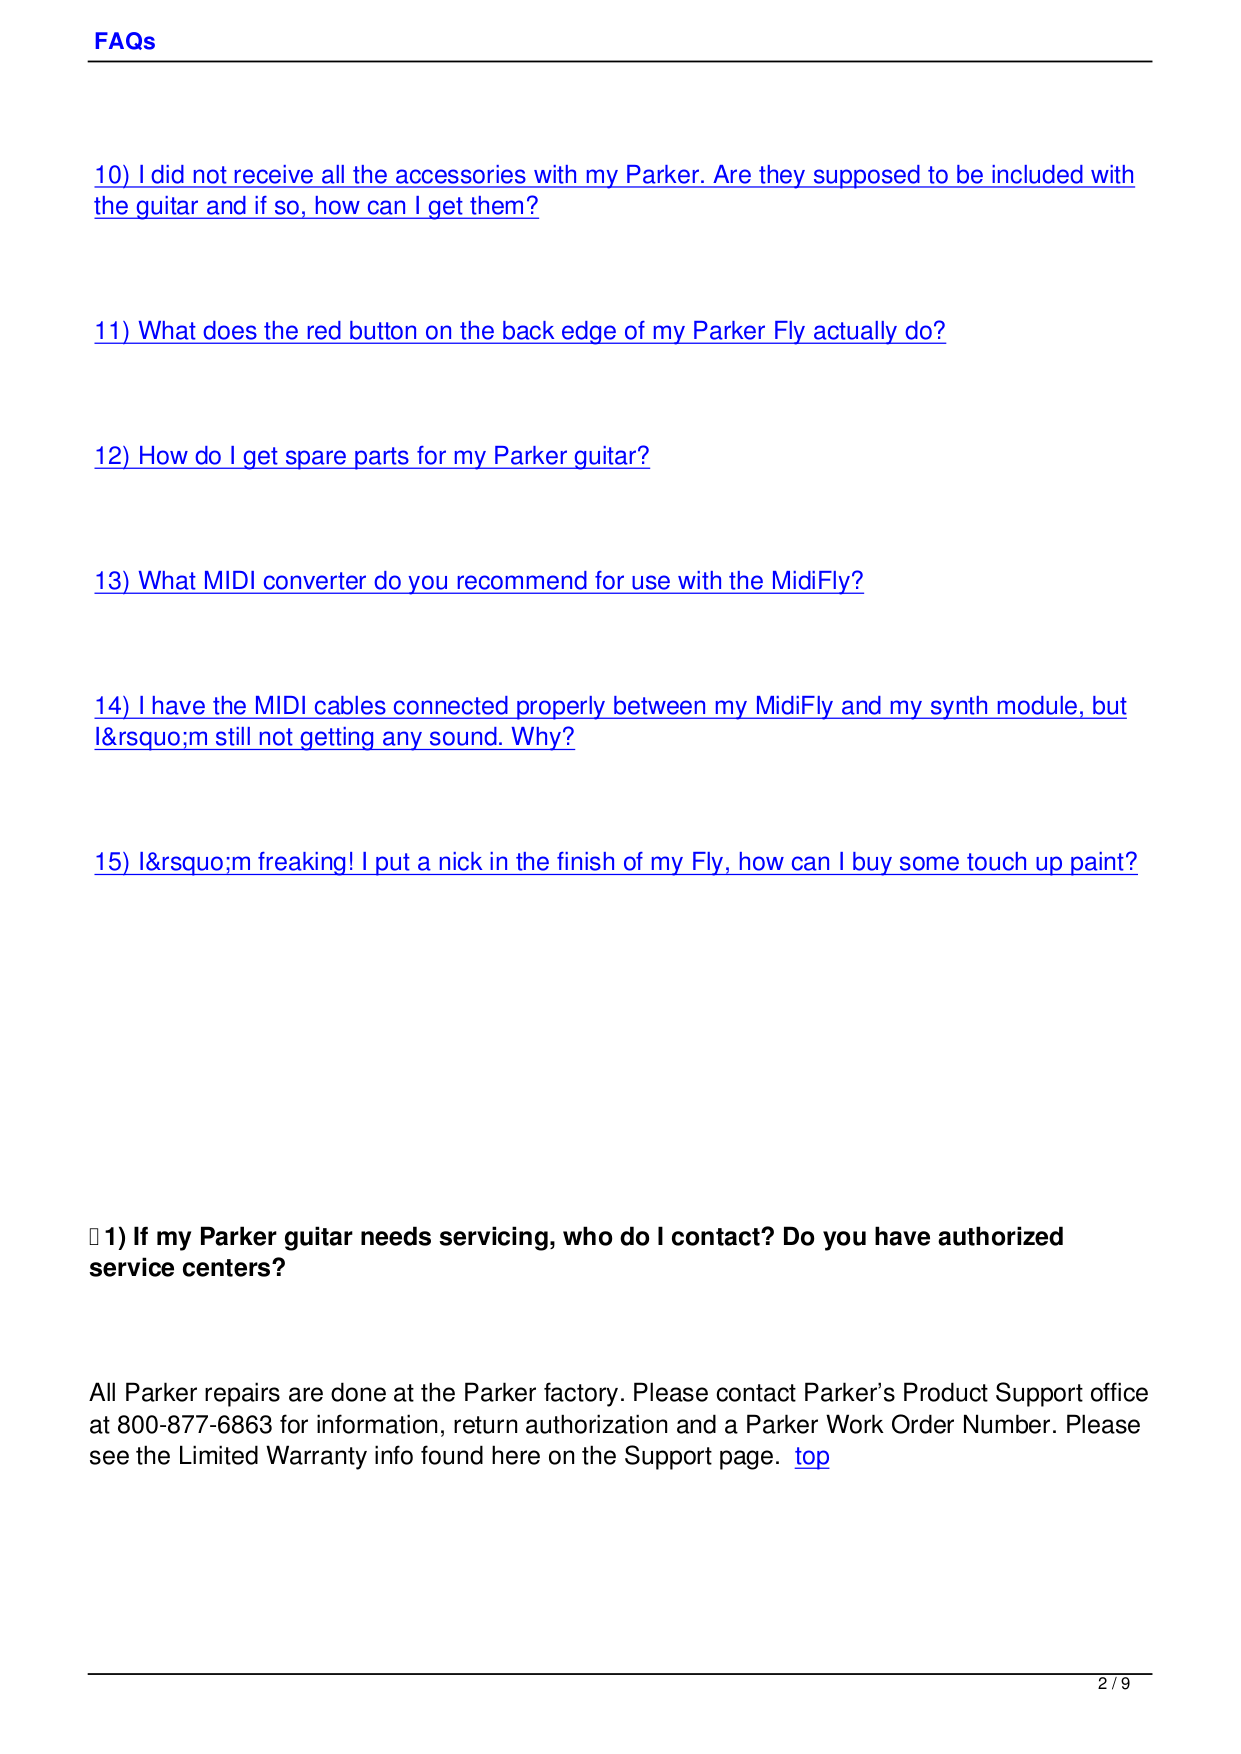 PDF manual for Parker Guitar Fly Classic